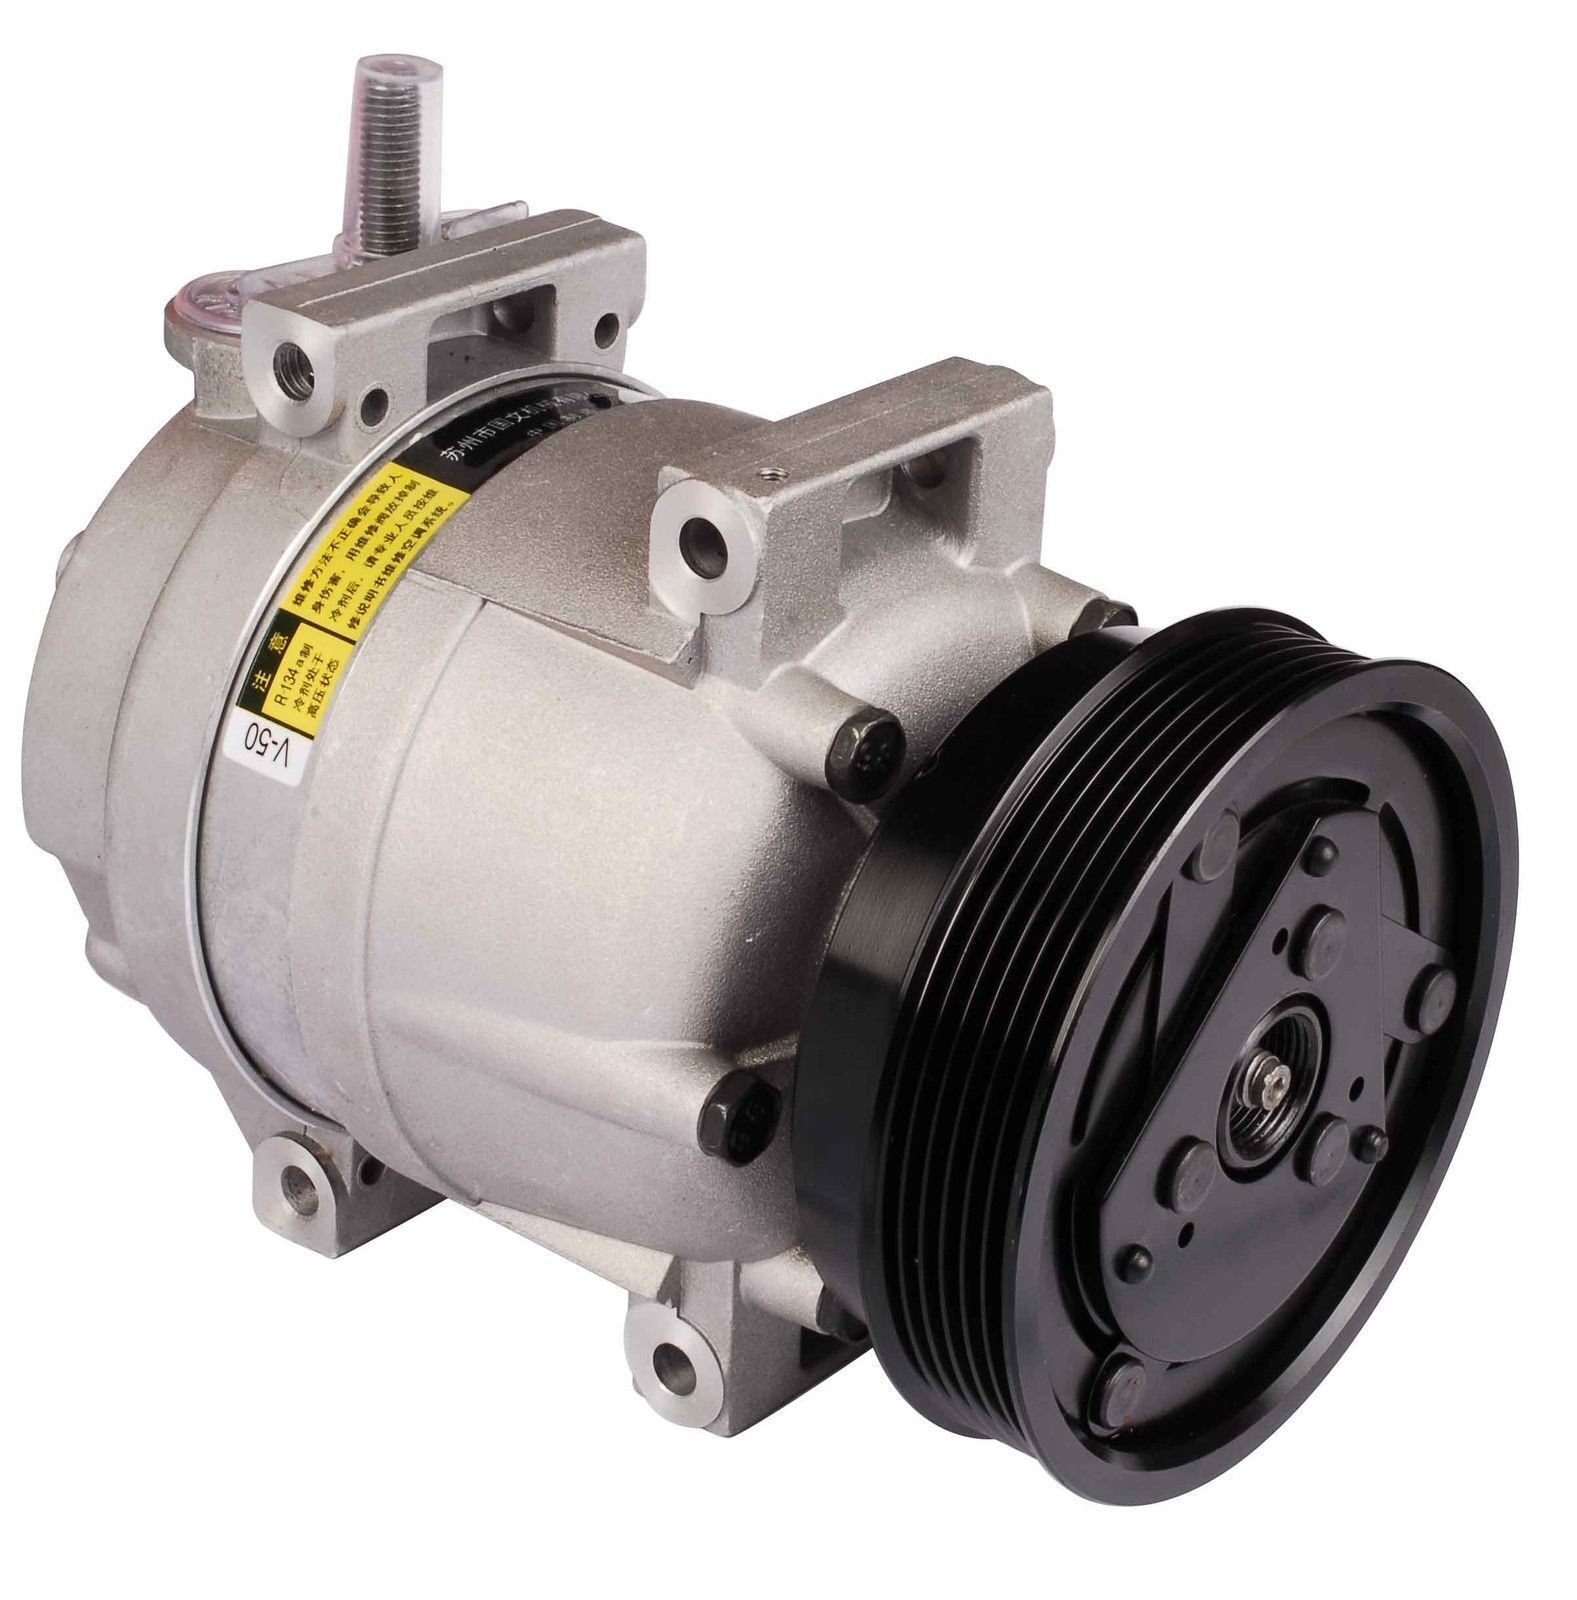 SET A//C AC Compressor For Kia Rondo EX//LX 2007 2008 2.4L 97701-1D200 Great